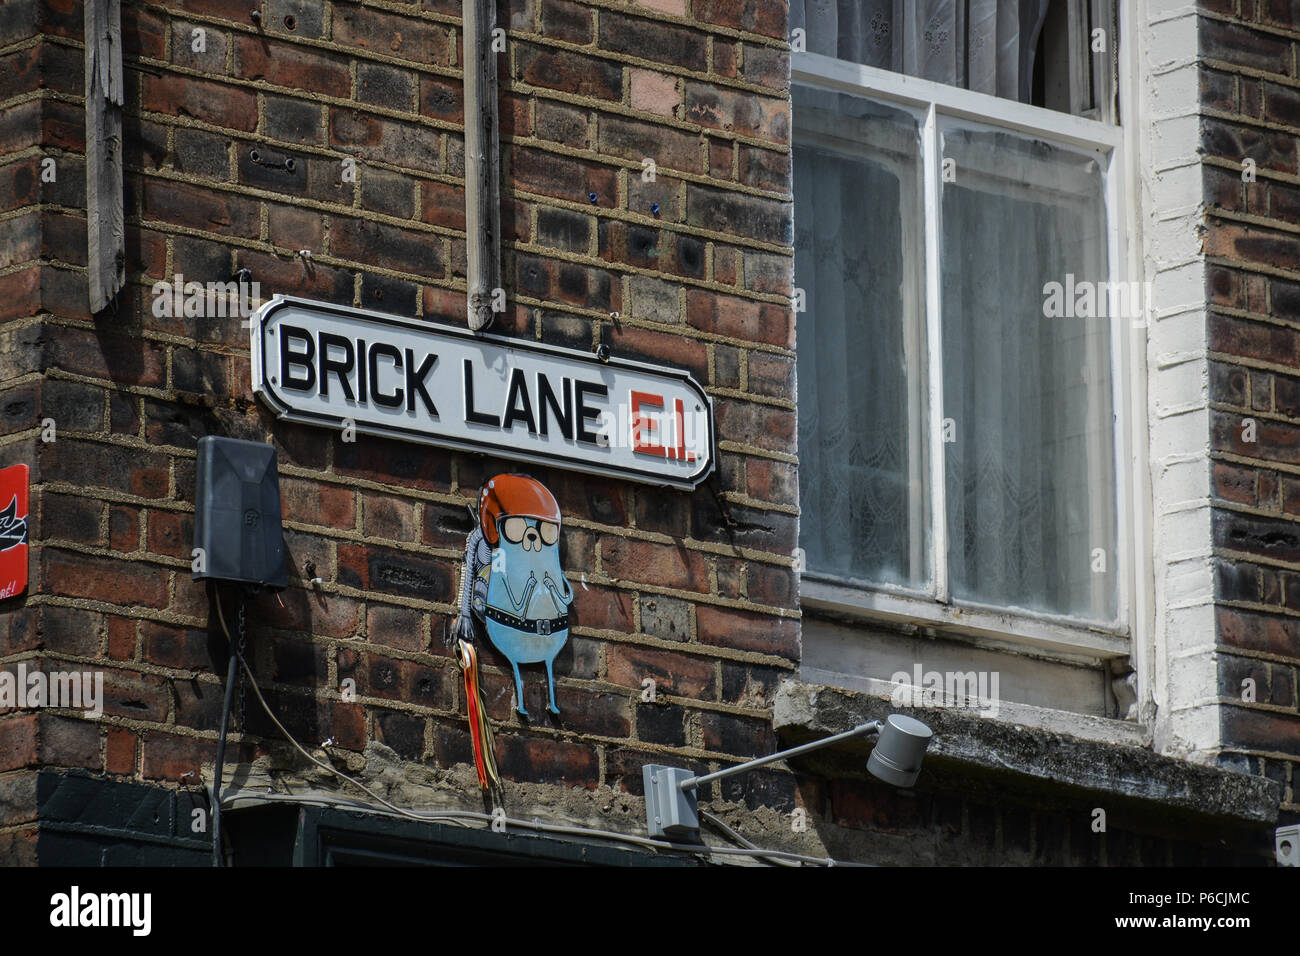 Street sign in London, England - Stock Image